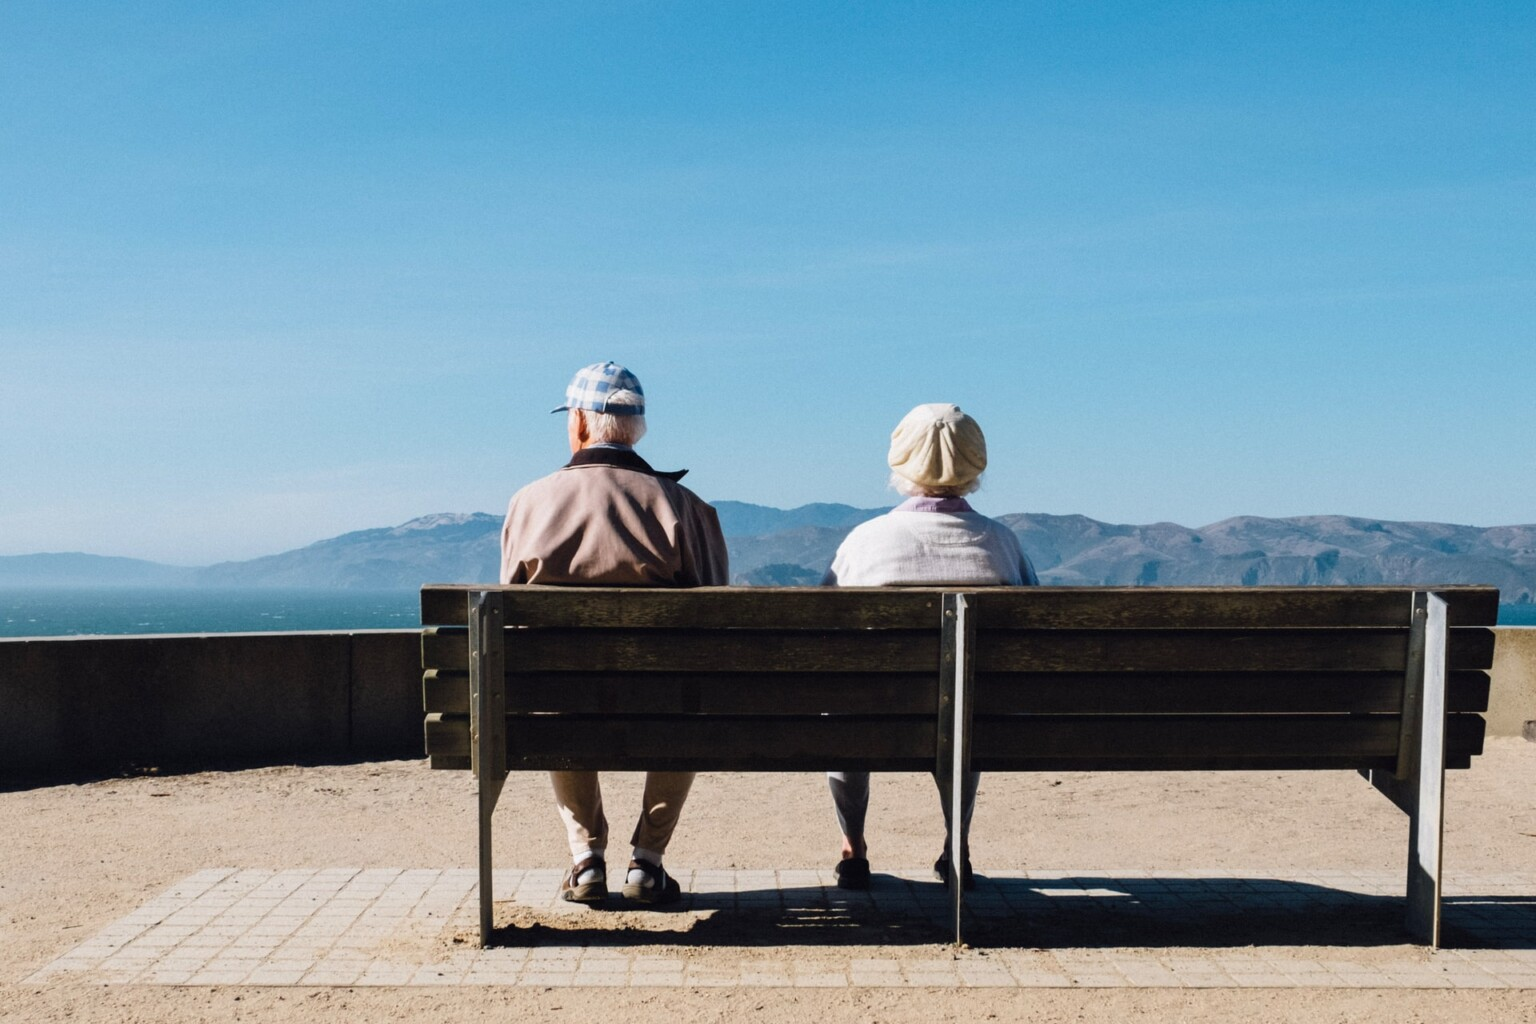 Life Insurance for Seniors: A Worthwhile Purchase